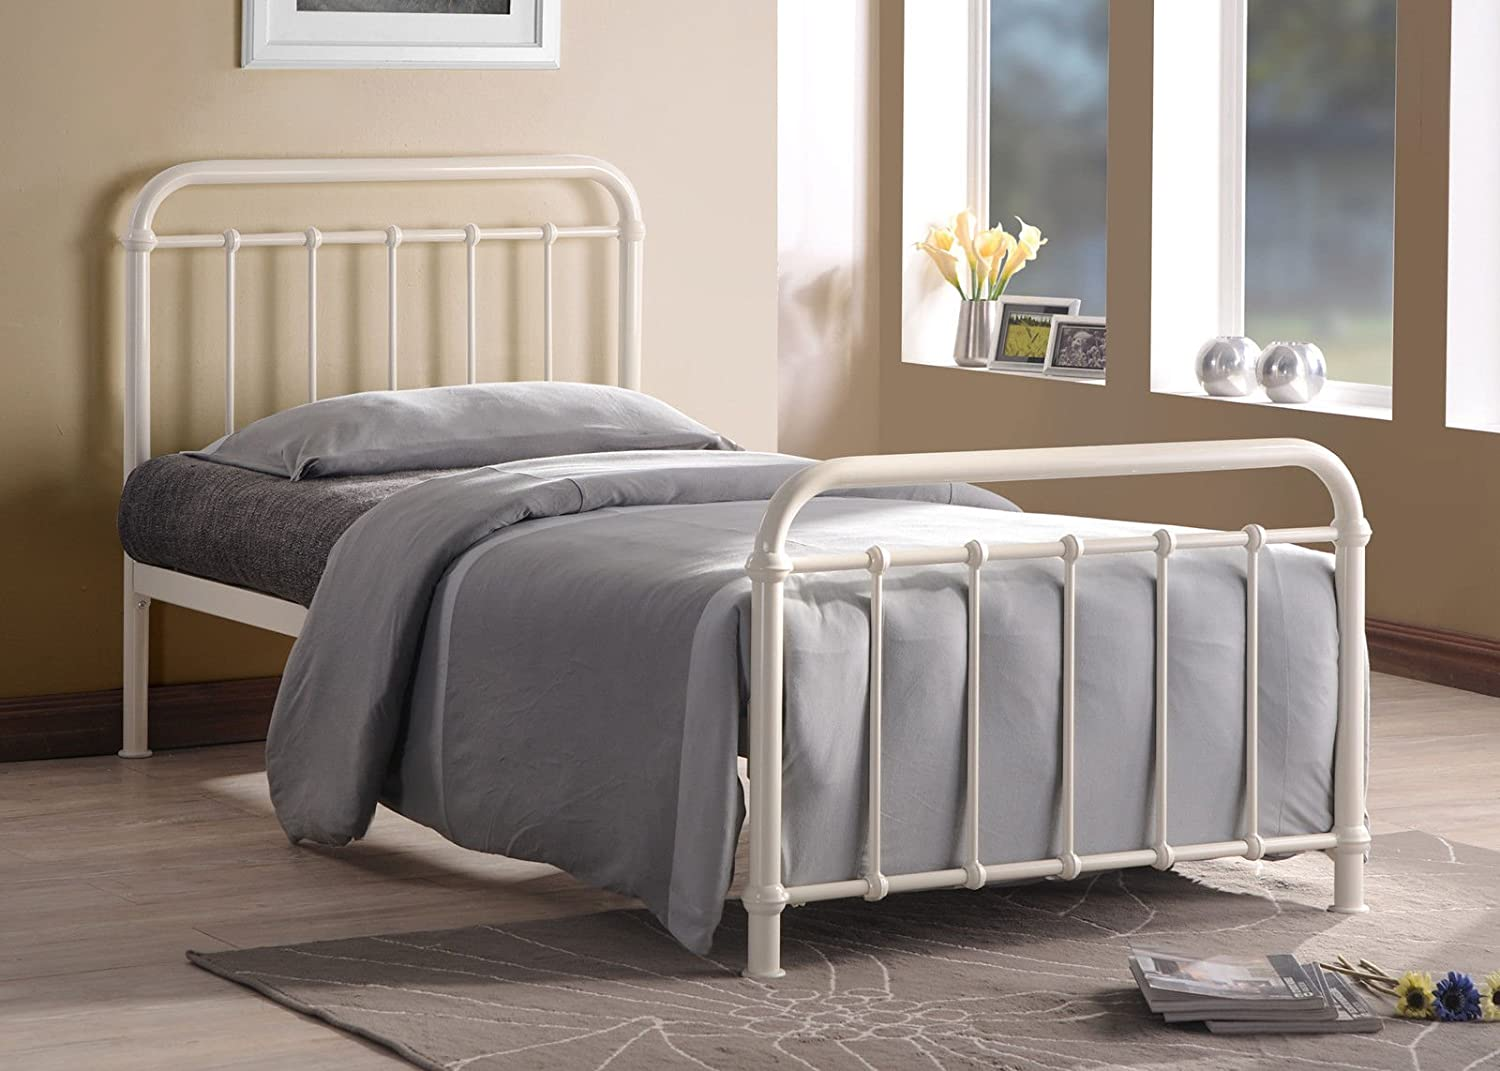 classic products bed for hospital fs med beds rent side casa with rails